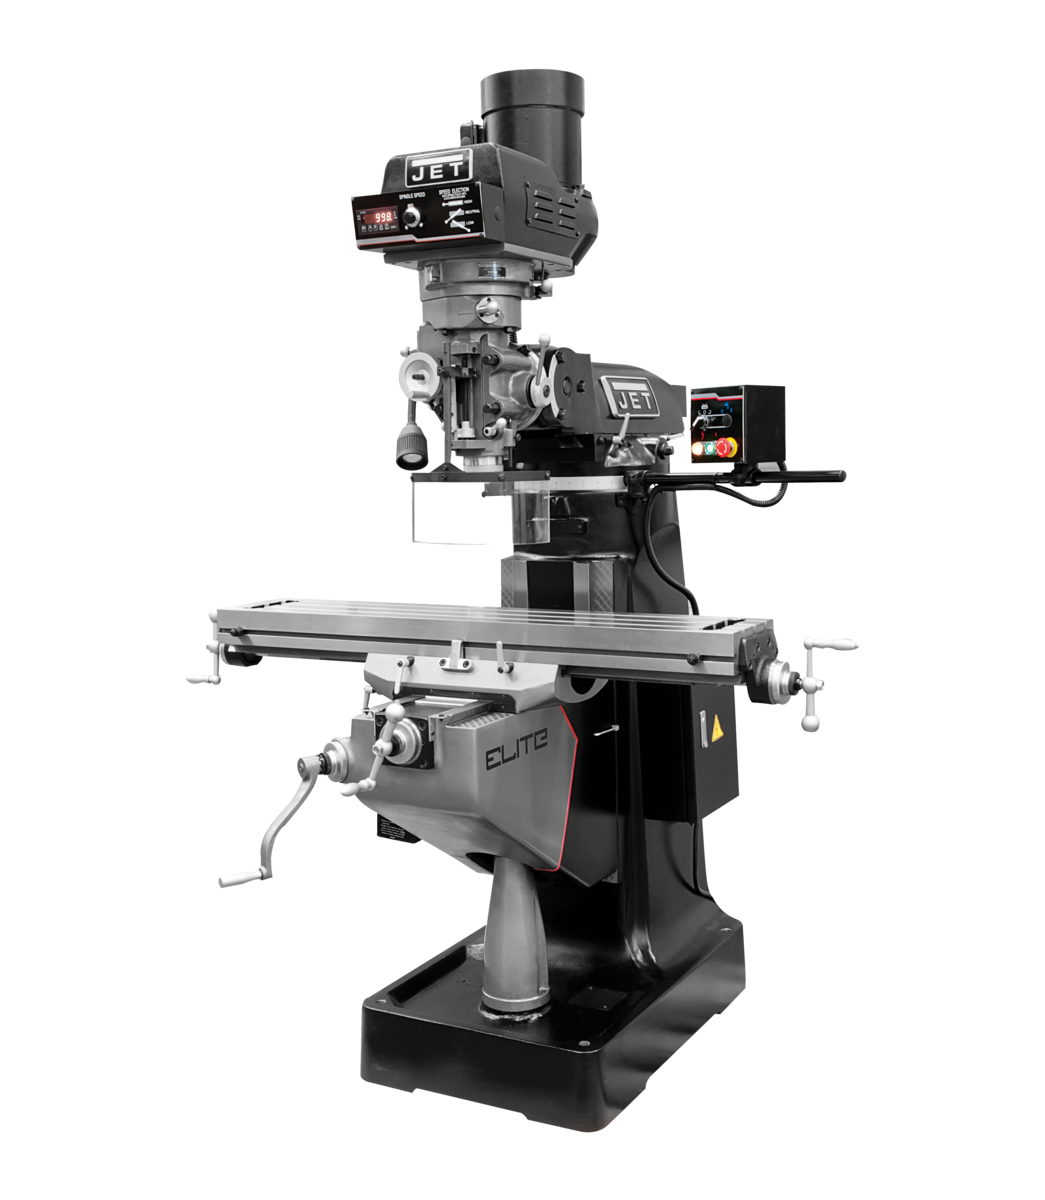 EVS-949 Mill with 3-Axis ACU-RITE 303 (Knee) DRO and Servo X, Y, Z-Axis Powerfeeds